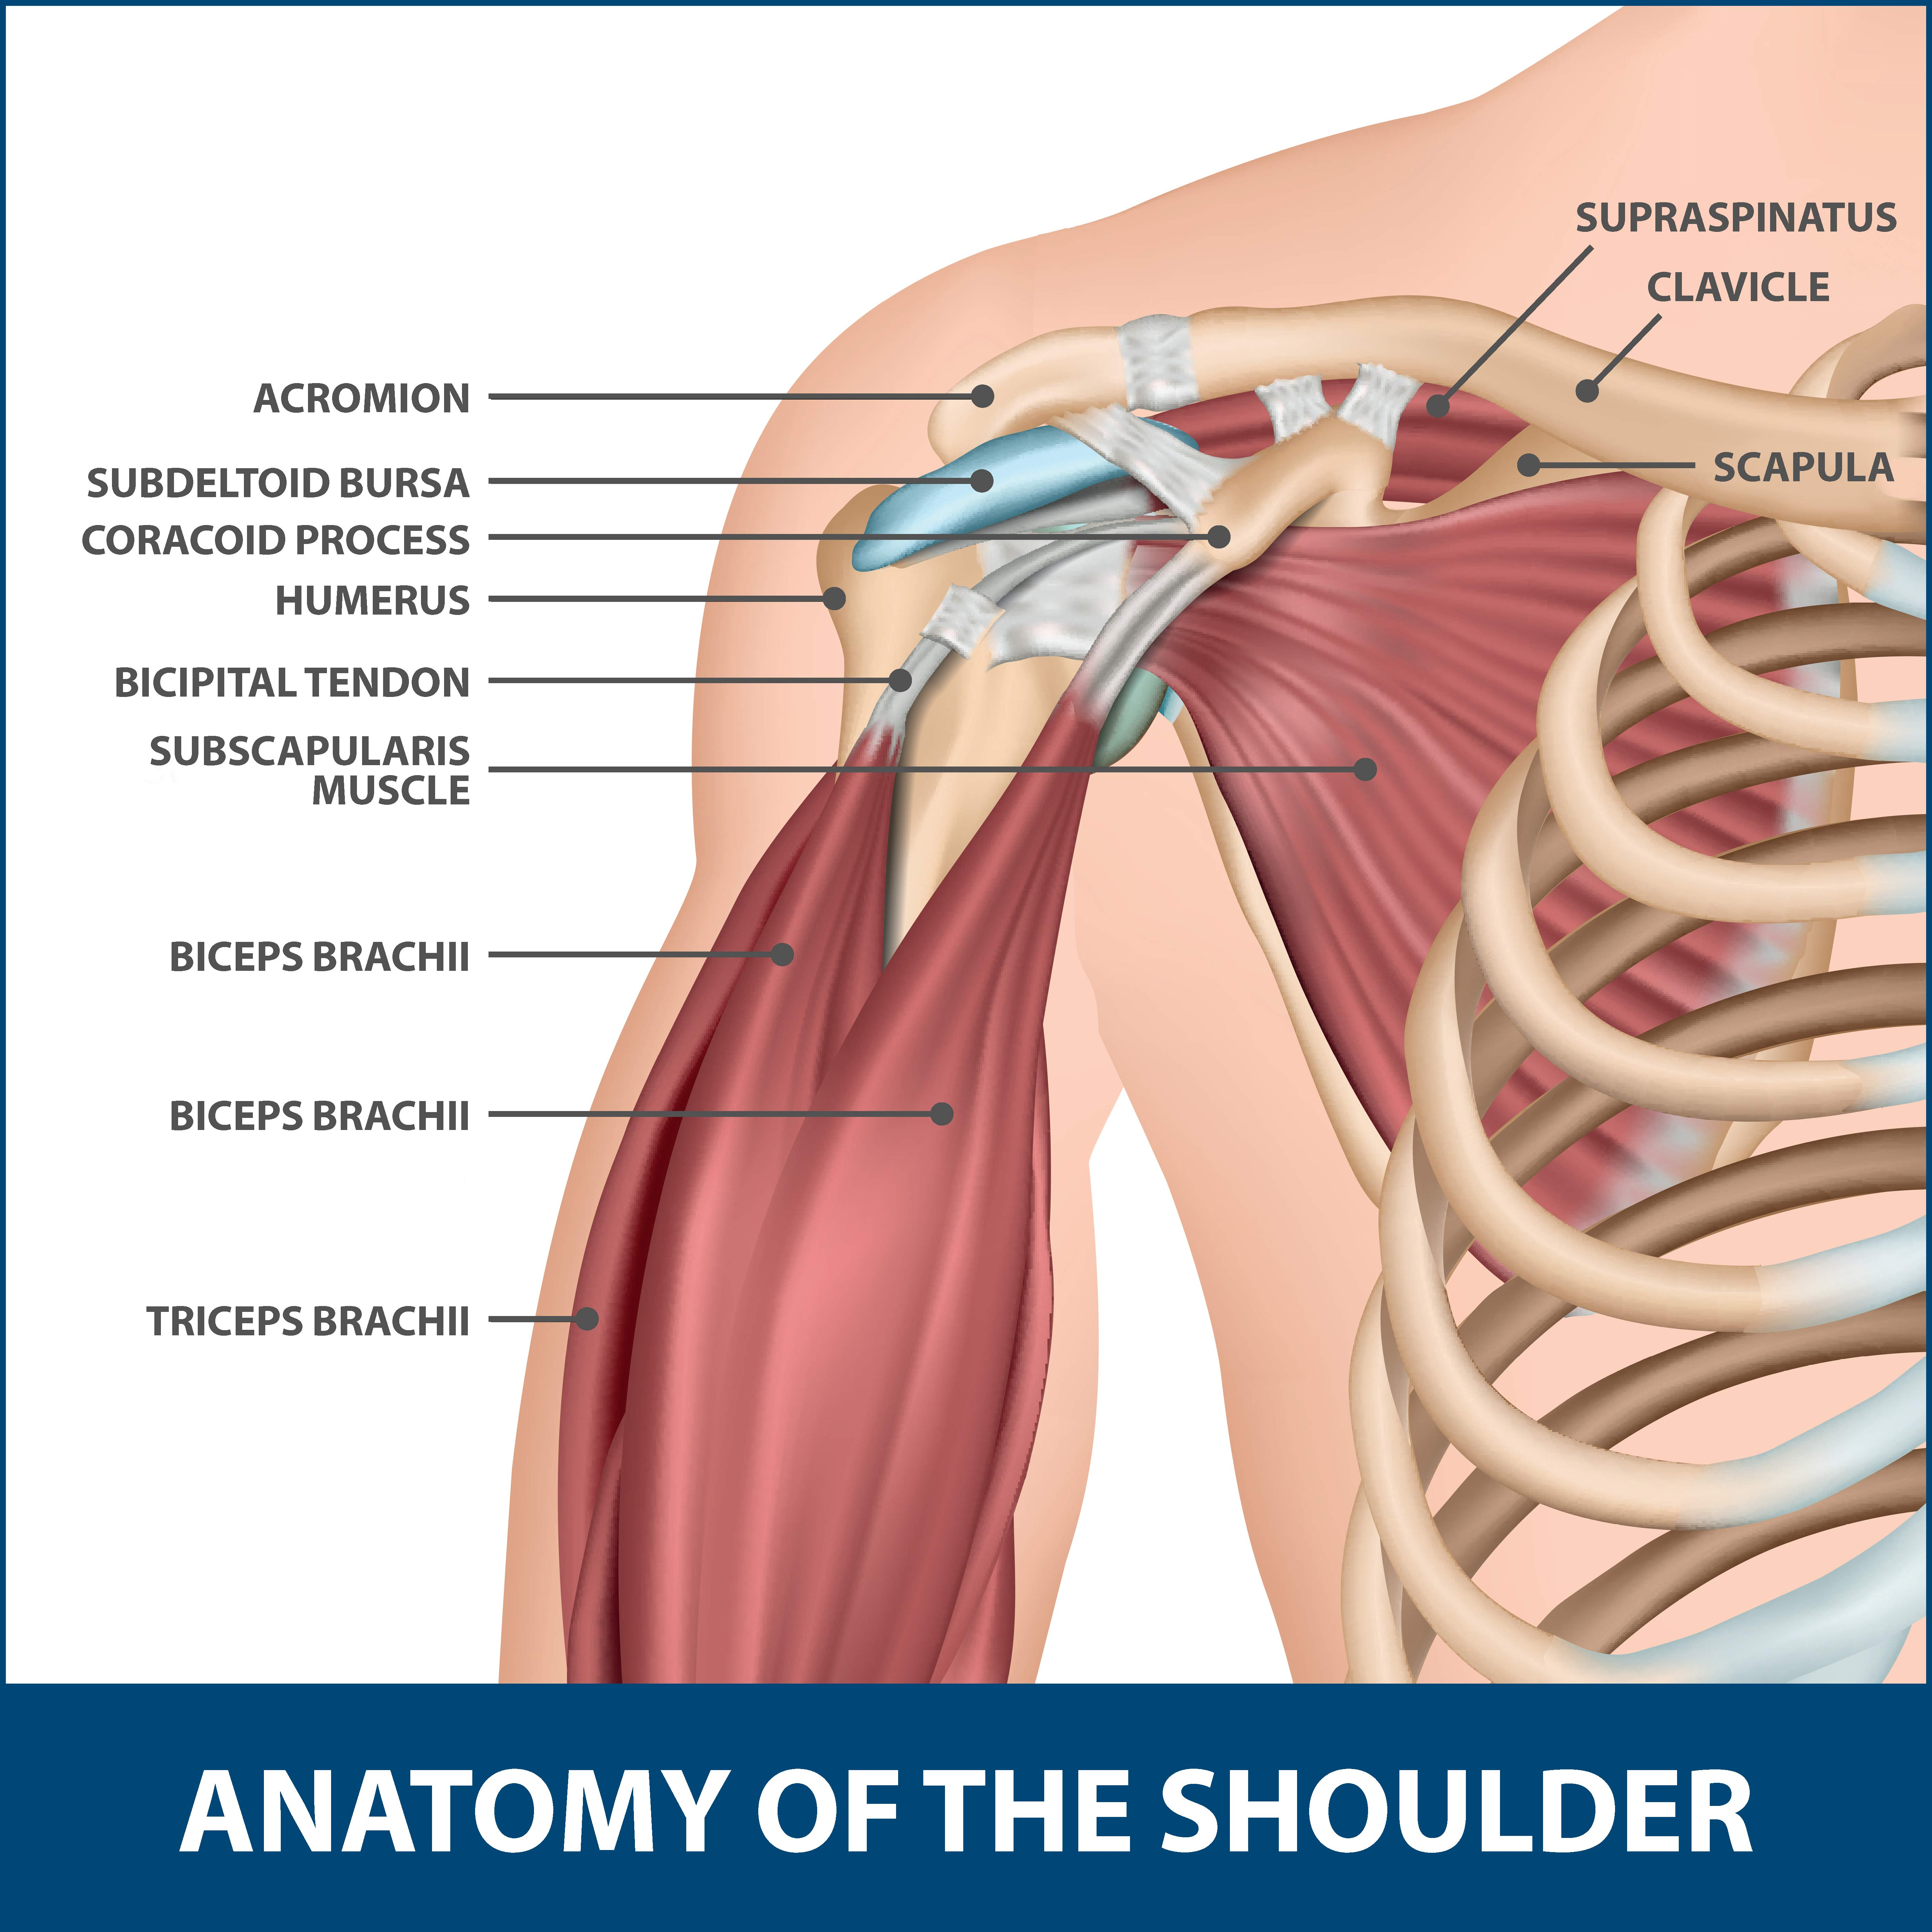 Calcific Tendinitis of the Shoulder